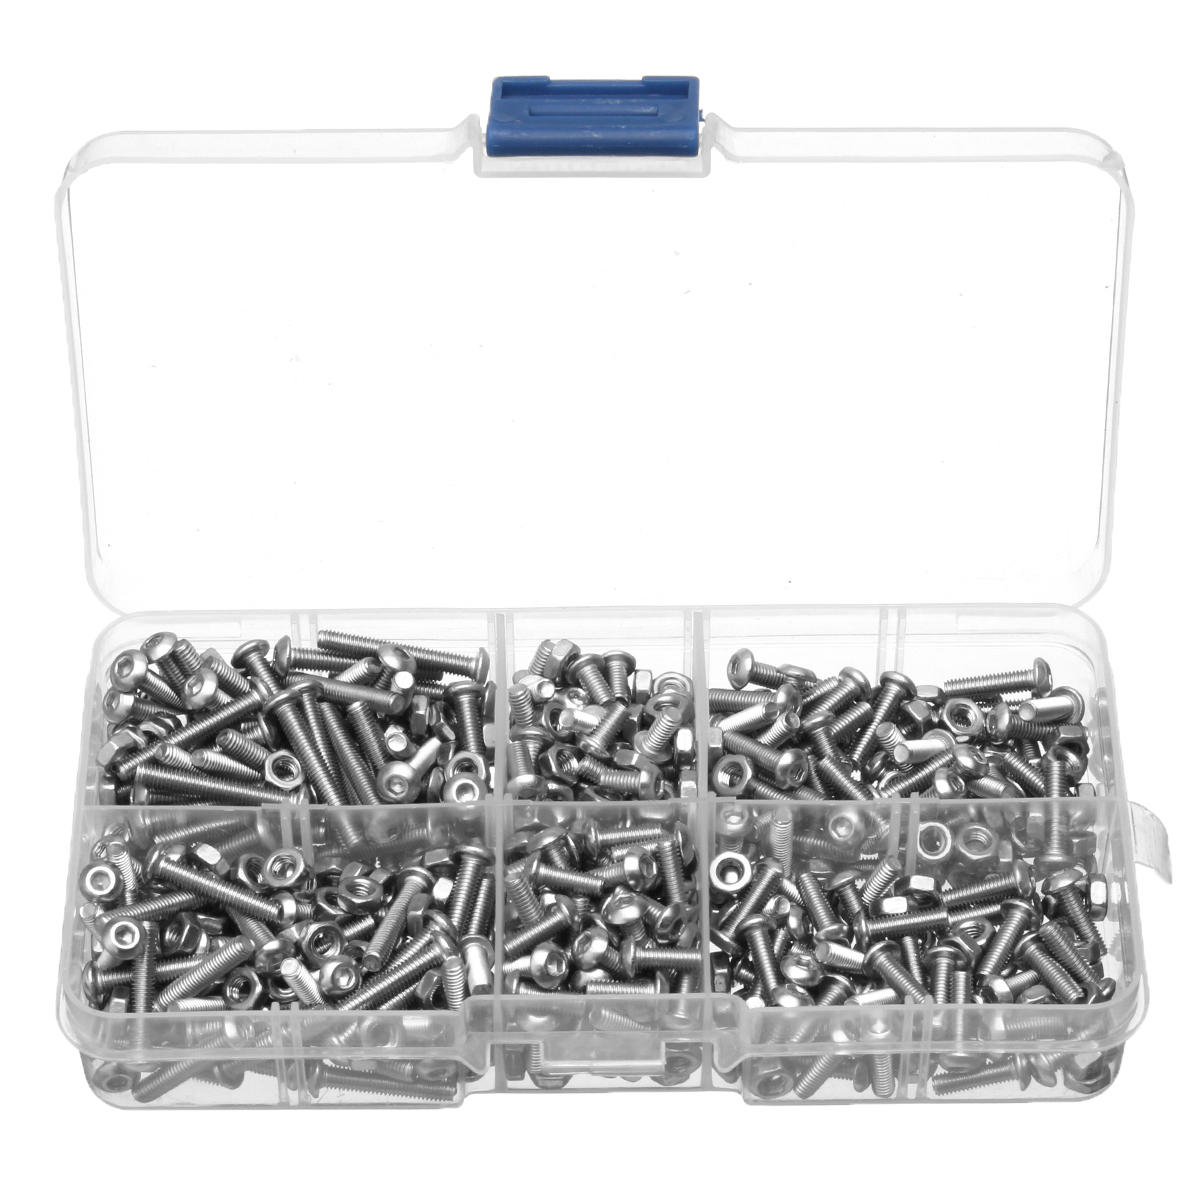 600Pcs M3 Hex Socket Button Head Screw Bolt Nuts 304 Stainless Steel